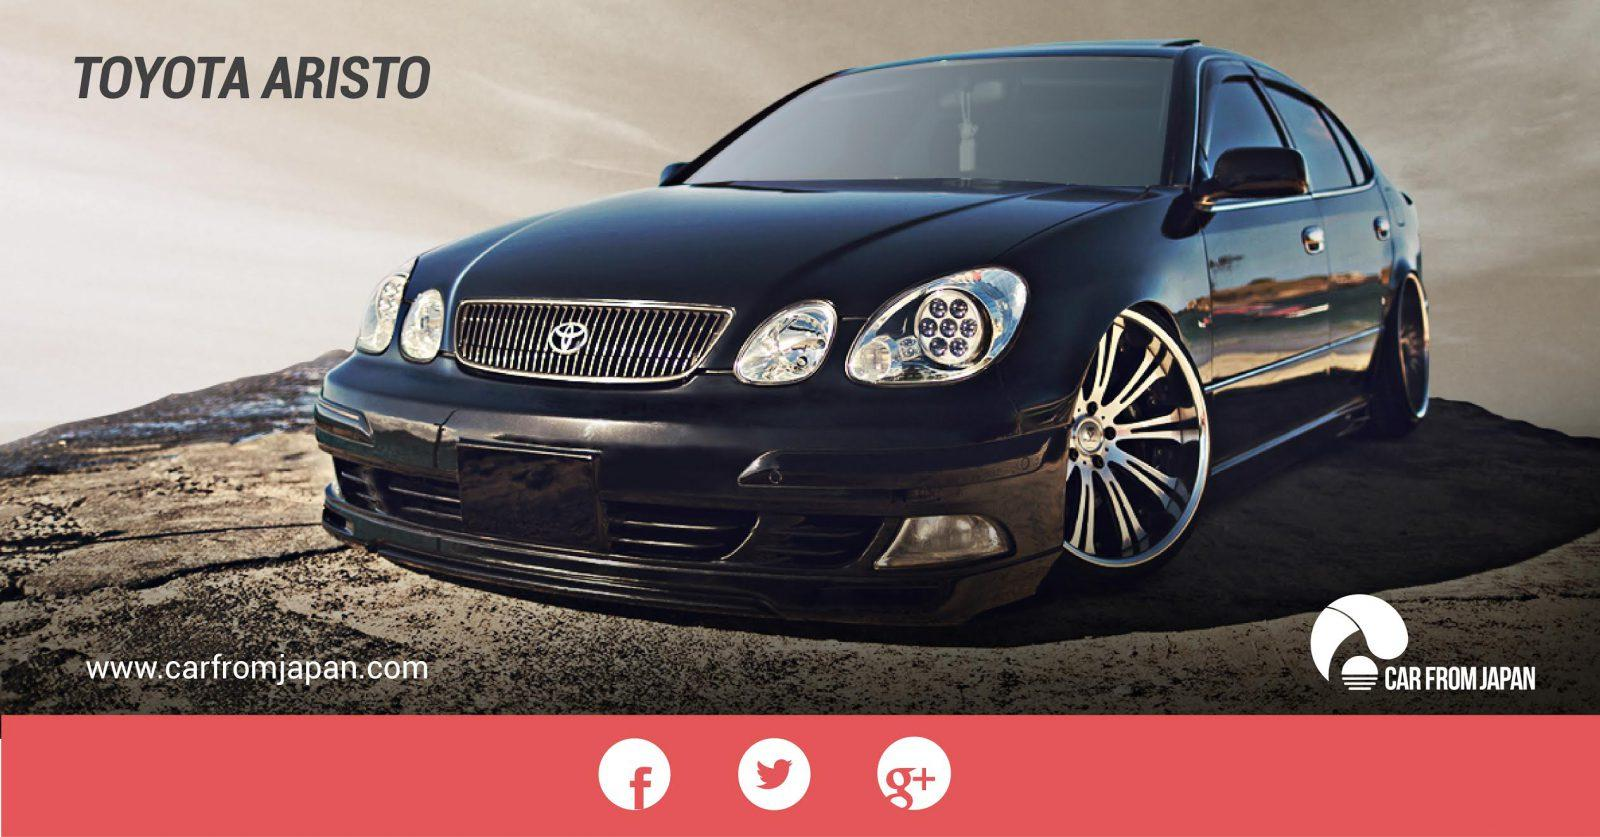 Import Cars From Japan >> Toyota Aristo Review   A Mid-size Luxury Car - CAR FROM JAPAN